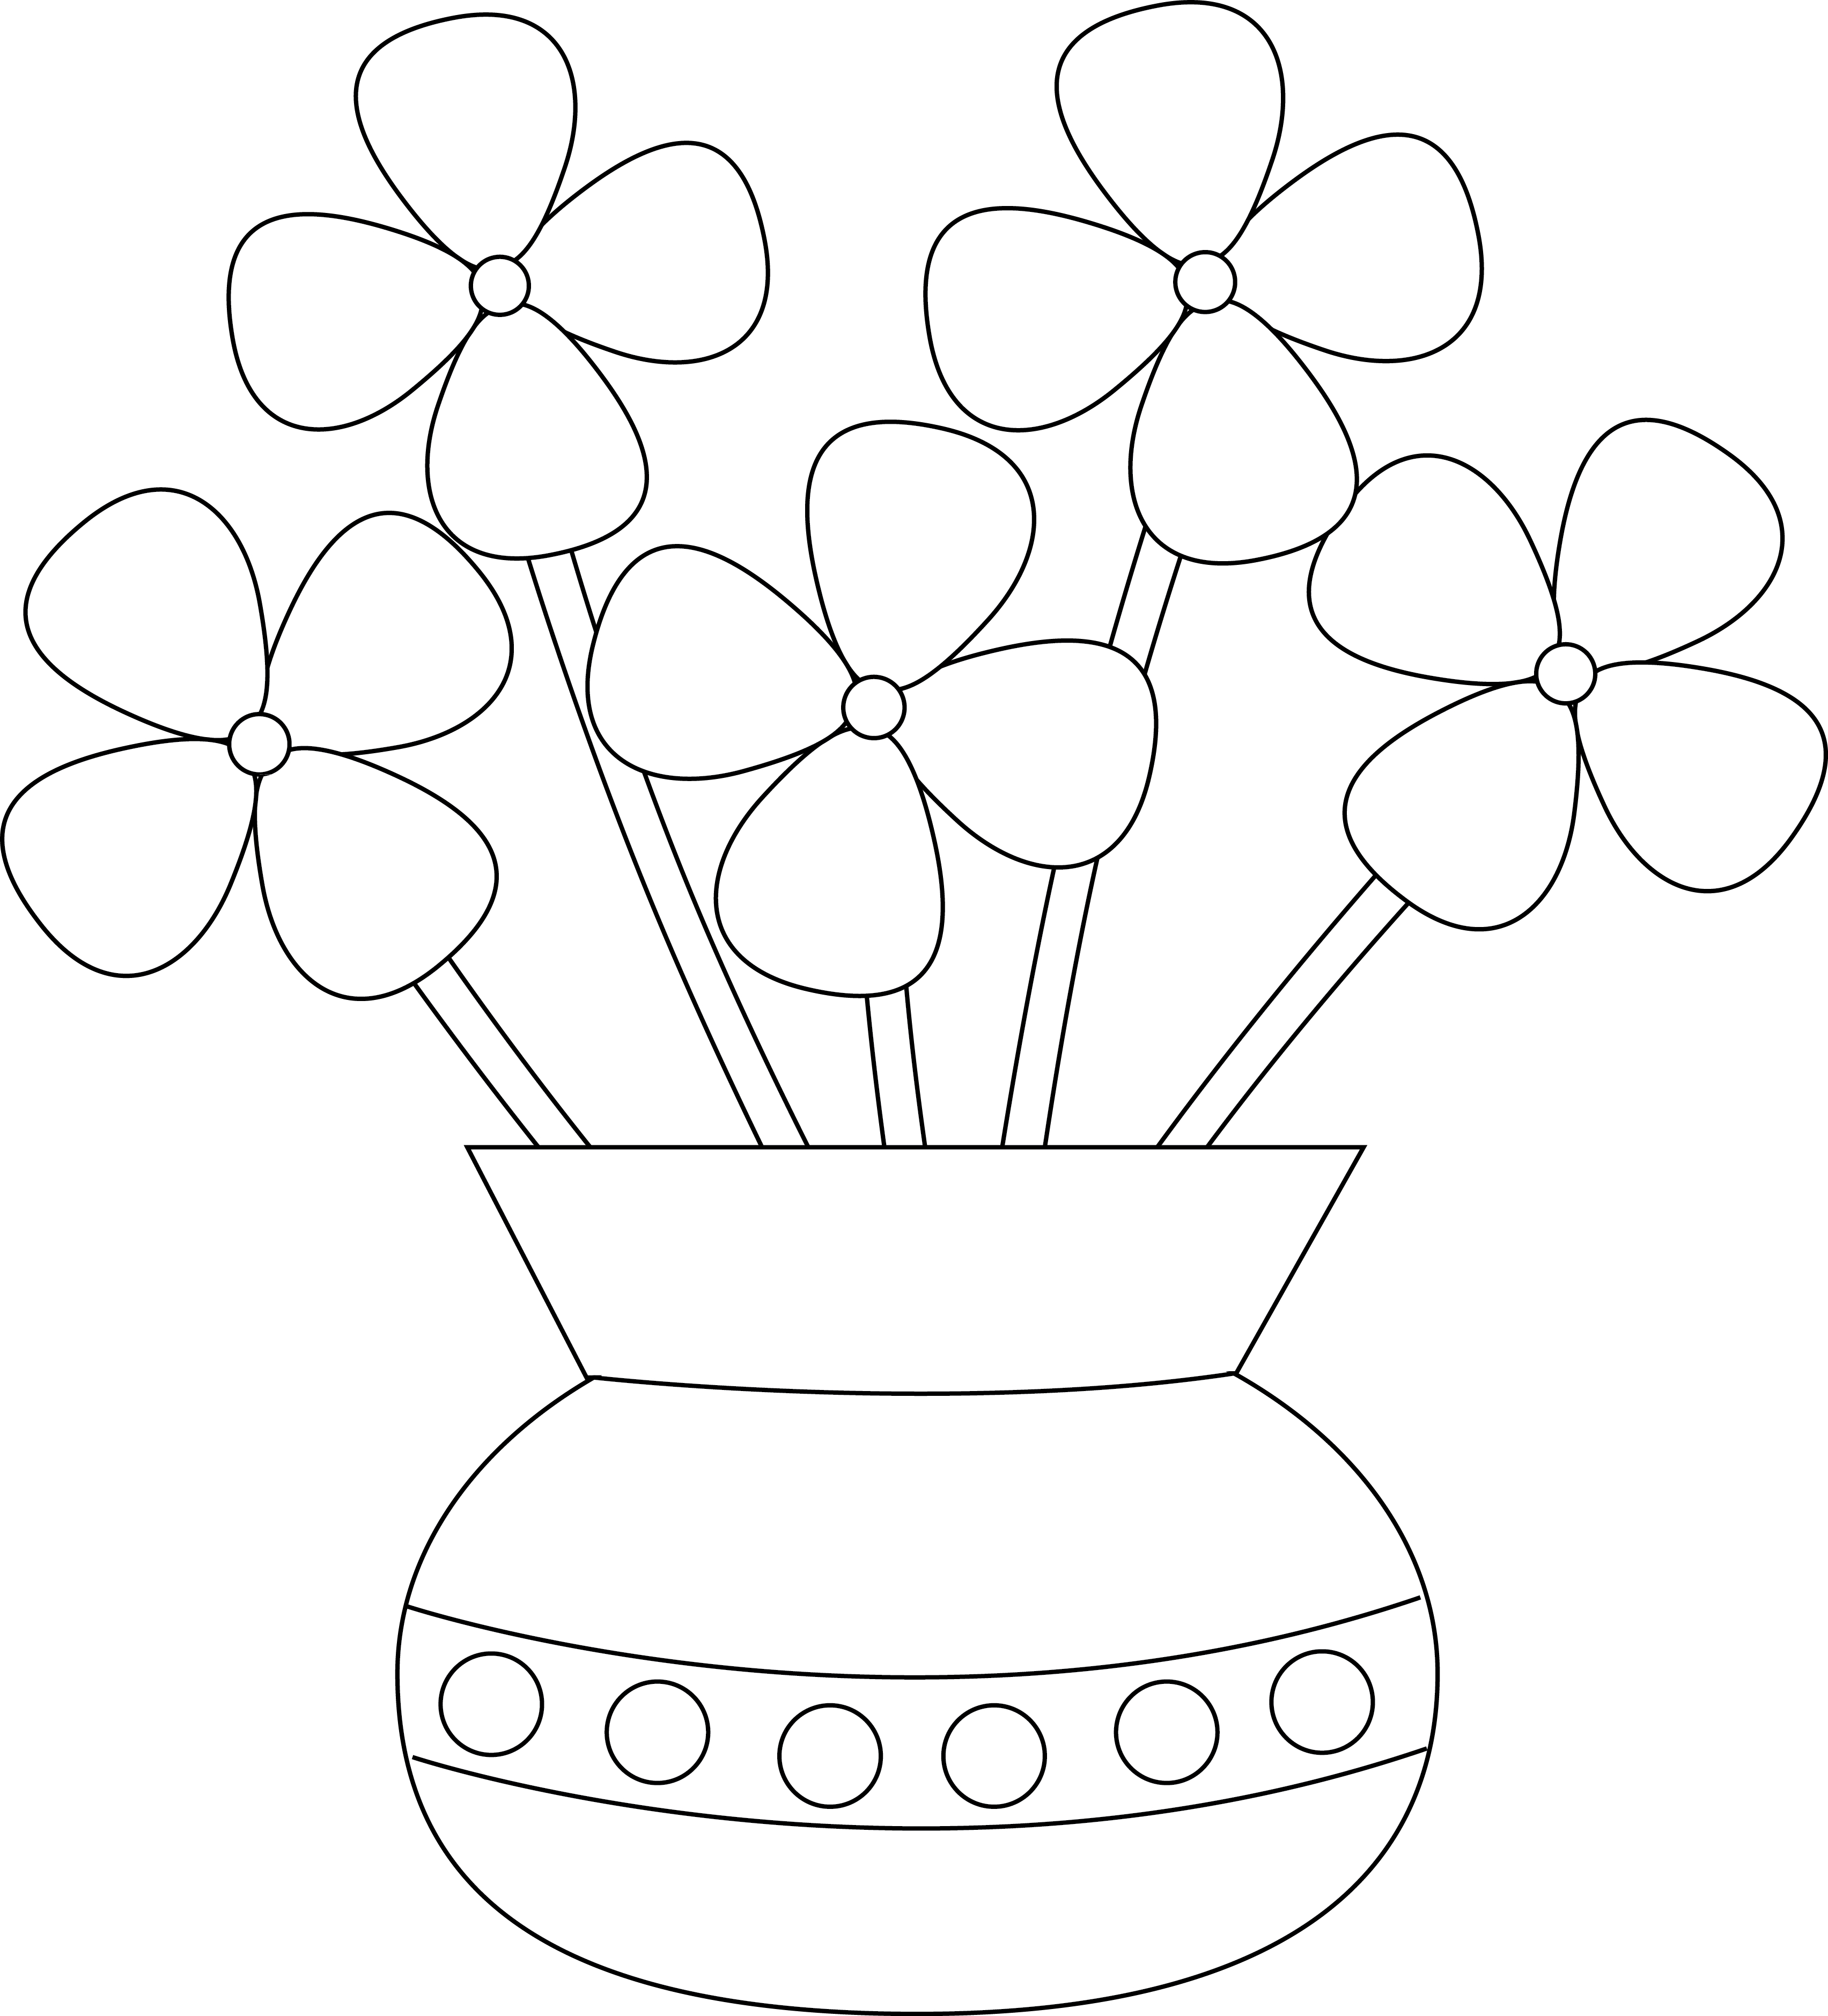 3408x3758 Flower Vase Drawing Easy How To Draw Flowers With Vase Easy Flower